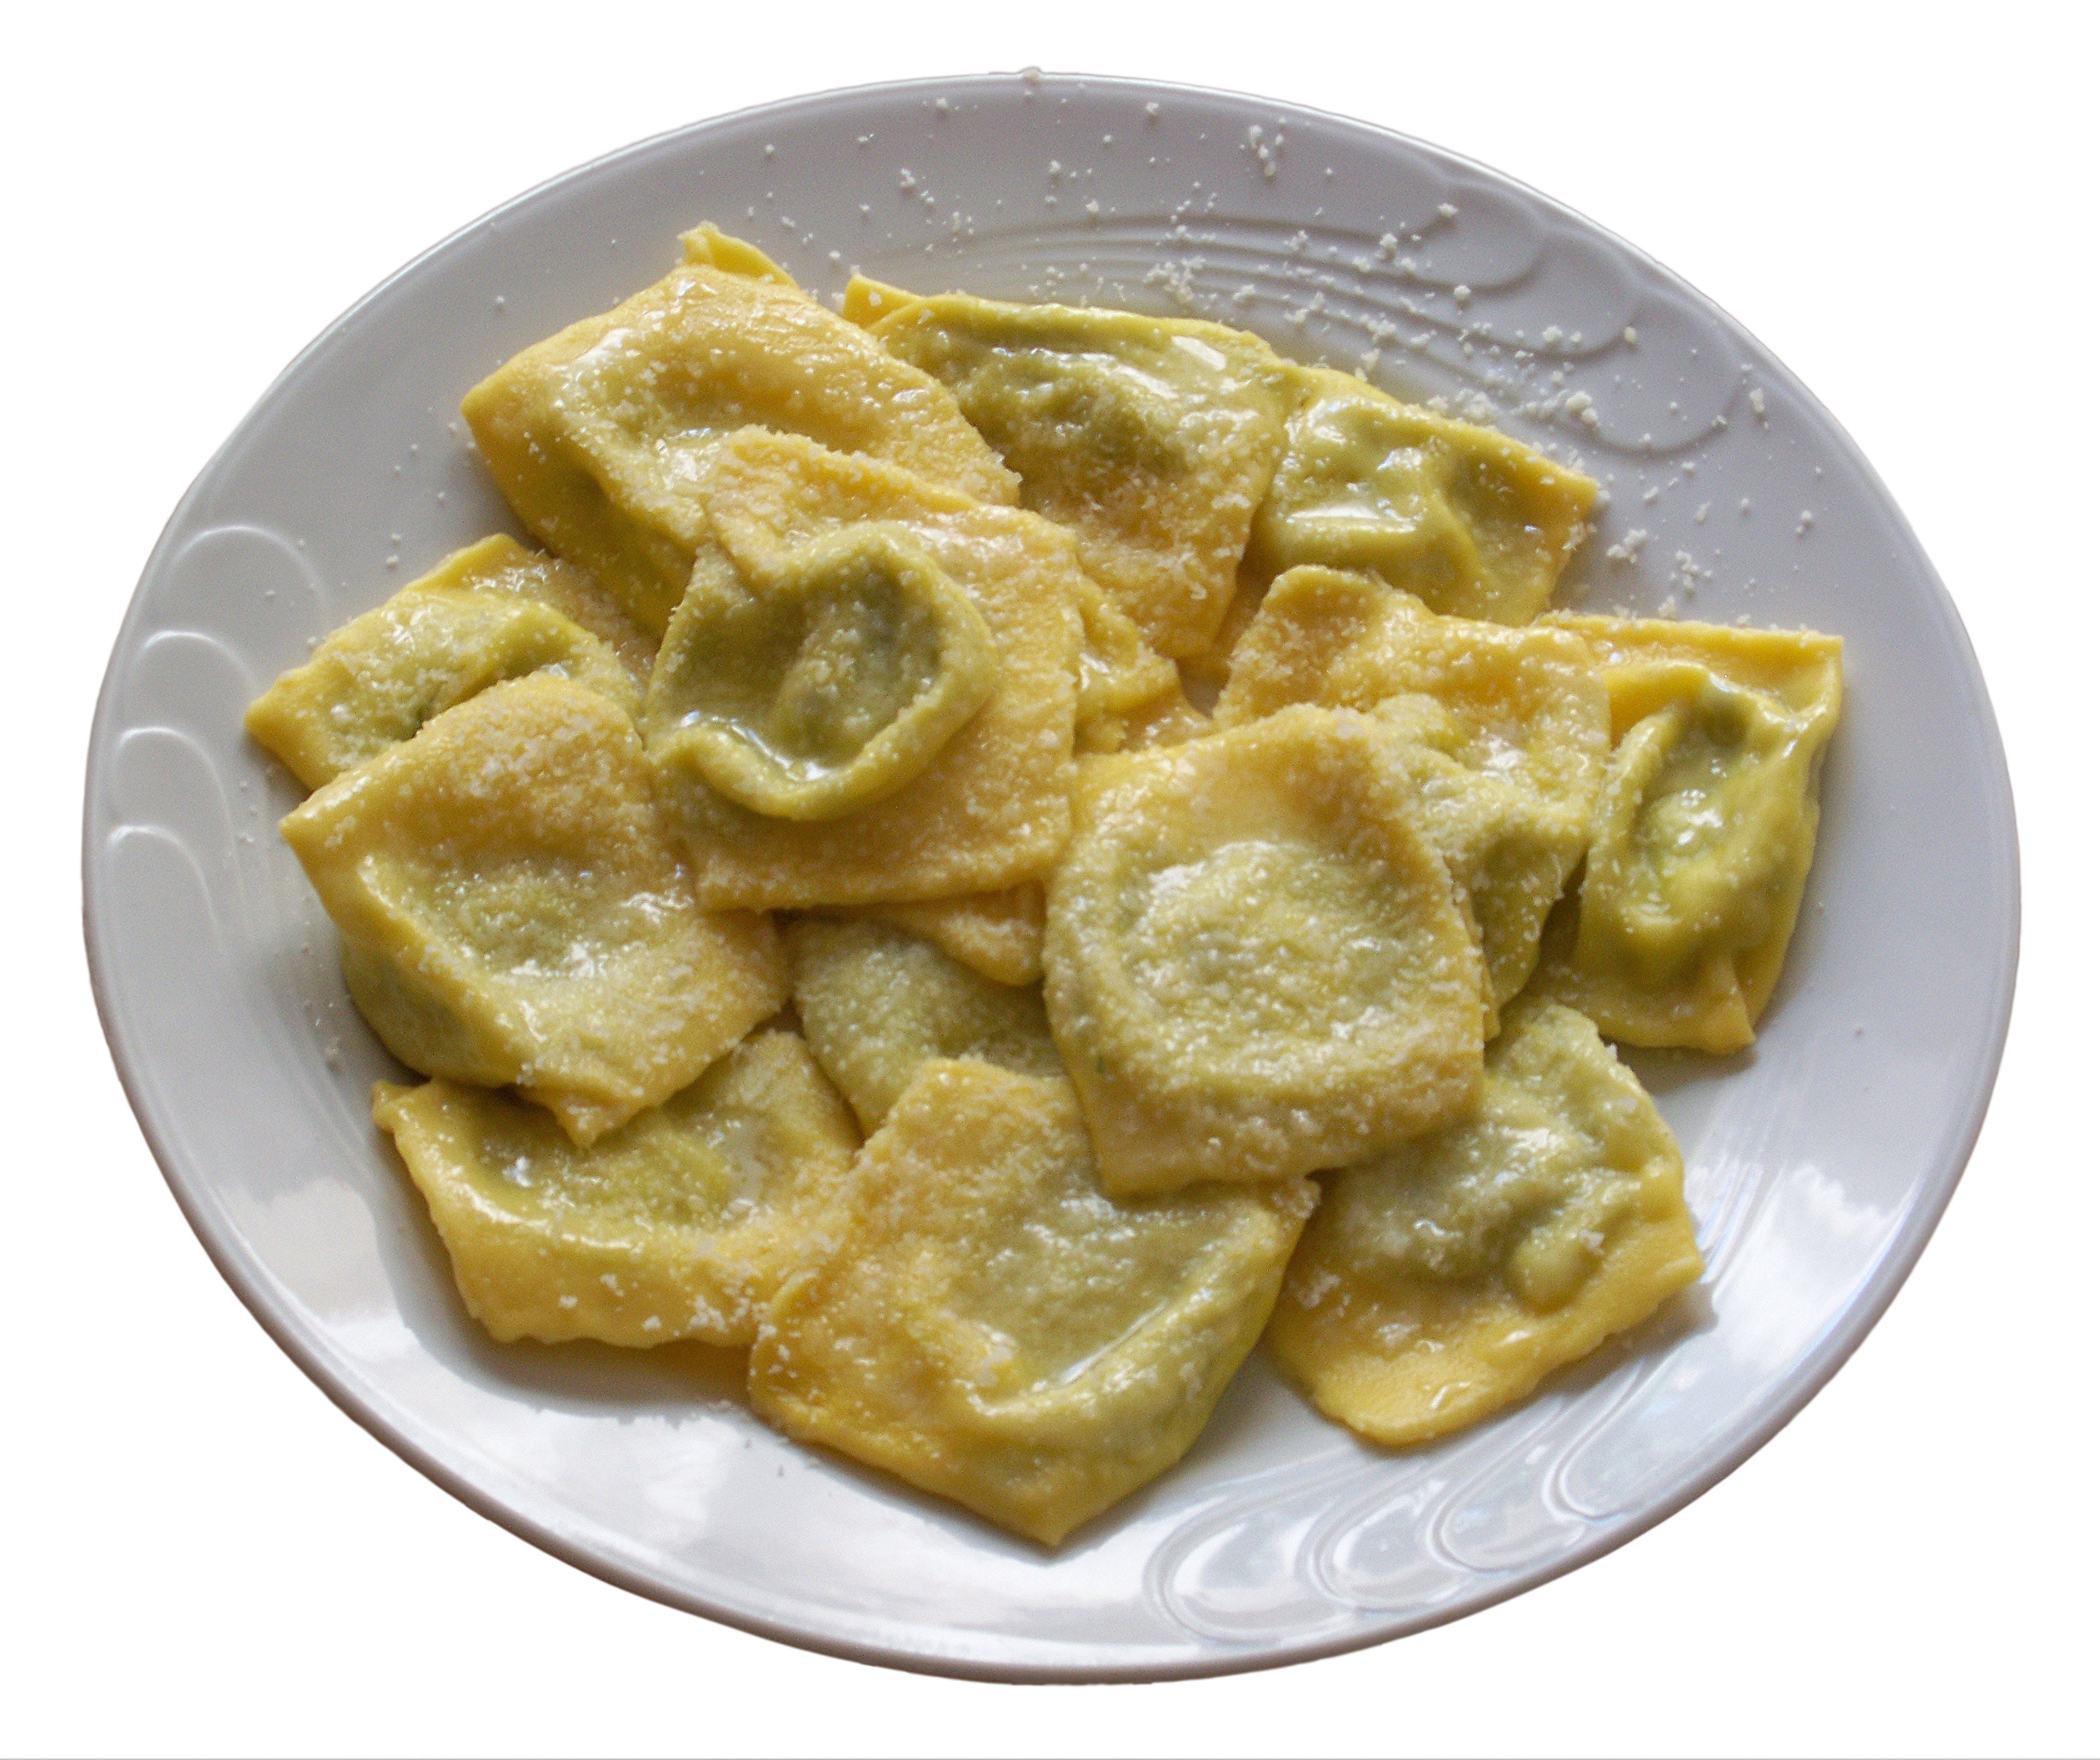 Tortelli d erbetta one of the first courses which are the most